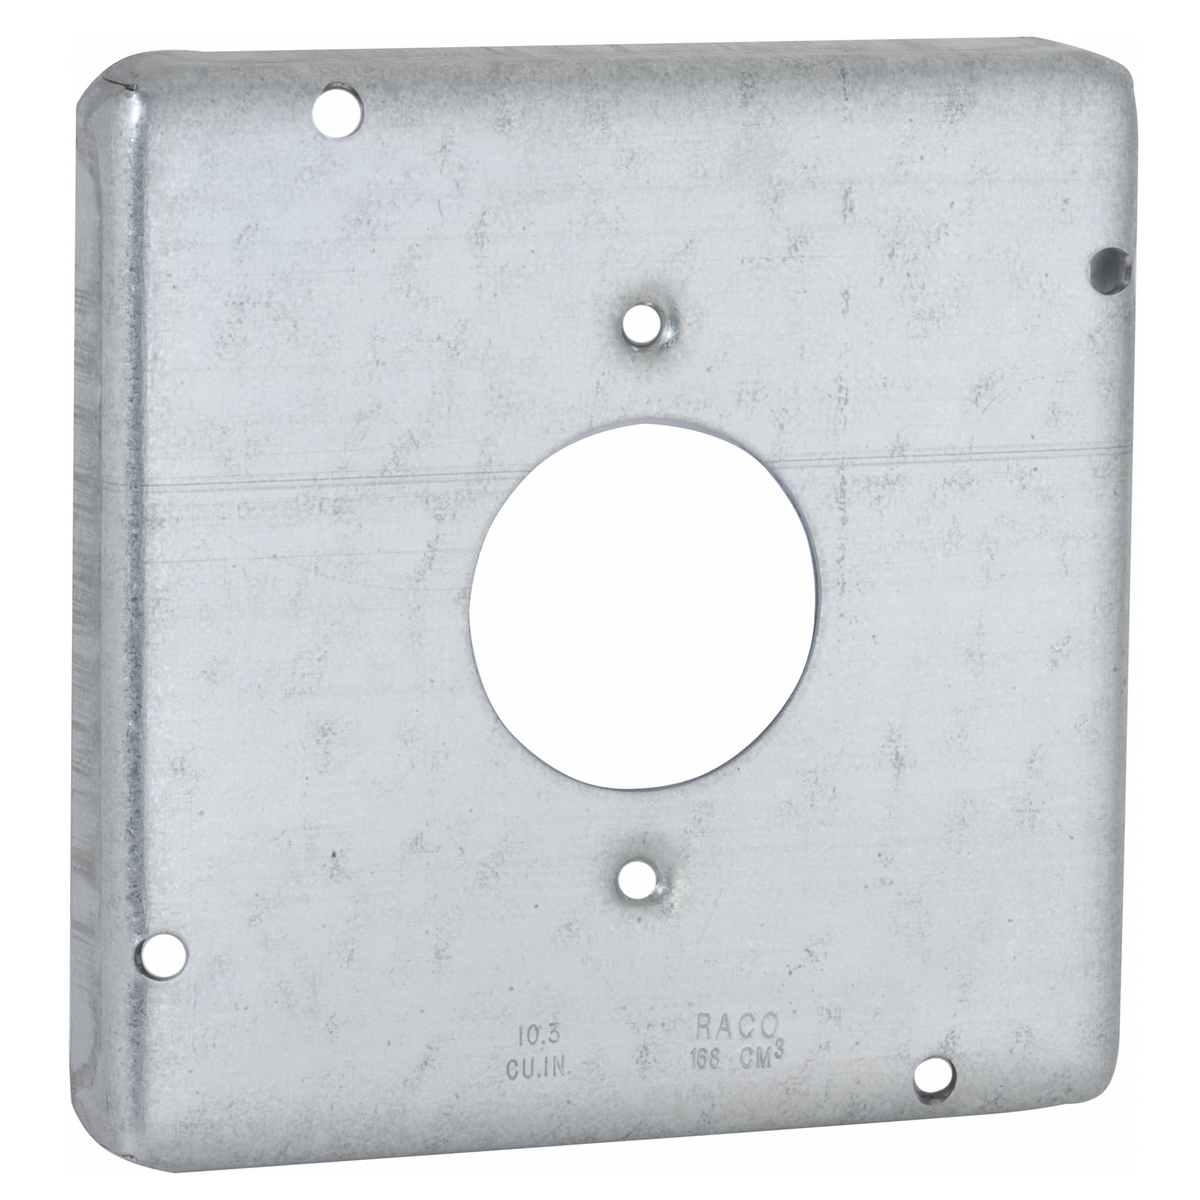 Hubbell-Raco 887 Exposed Work Cover